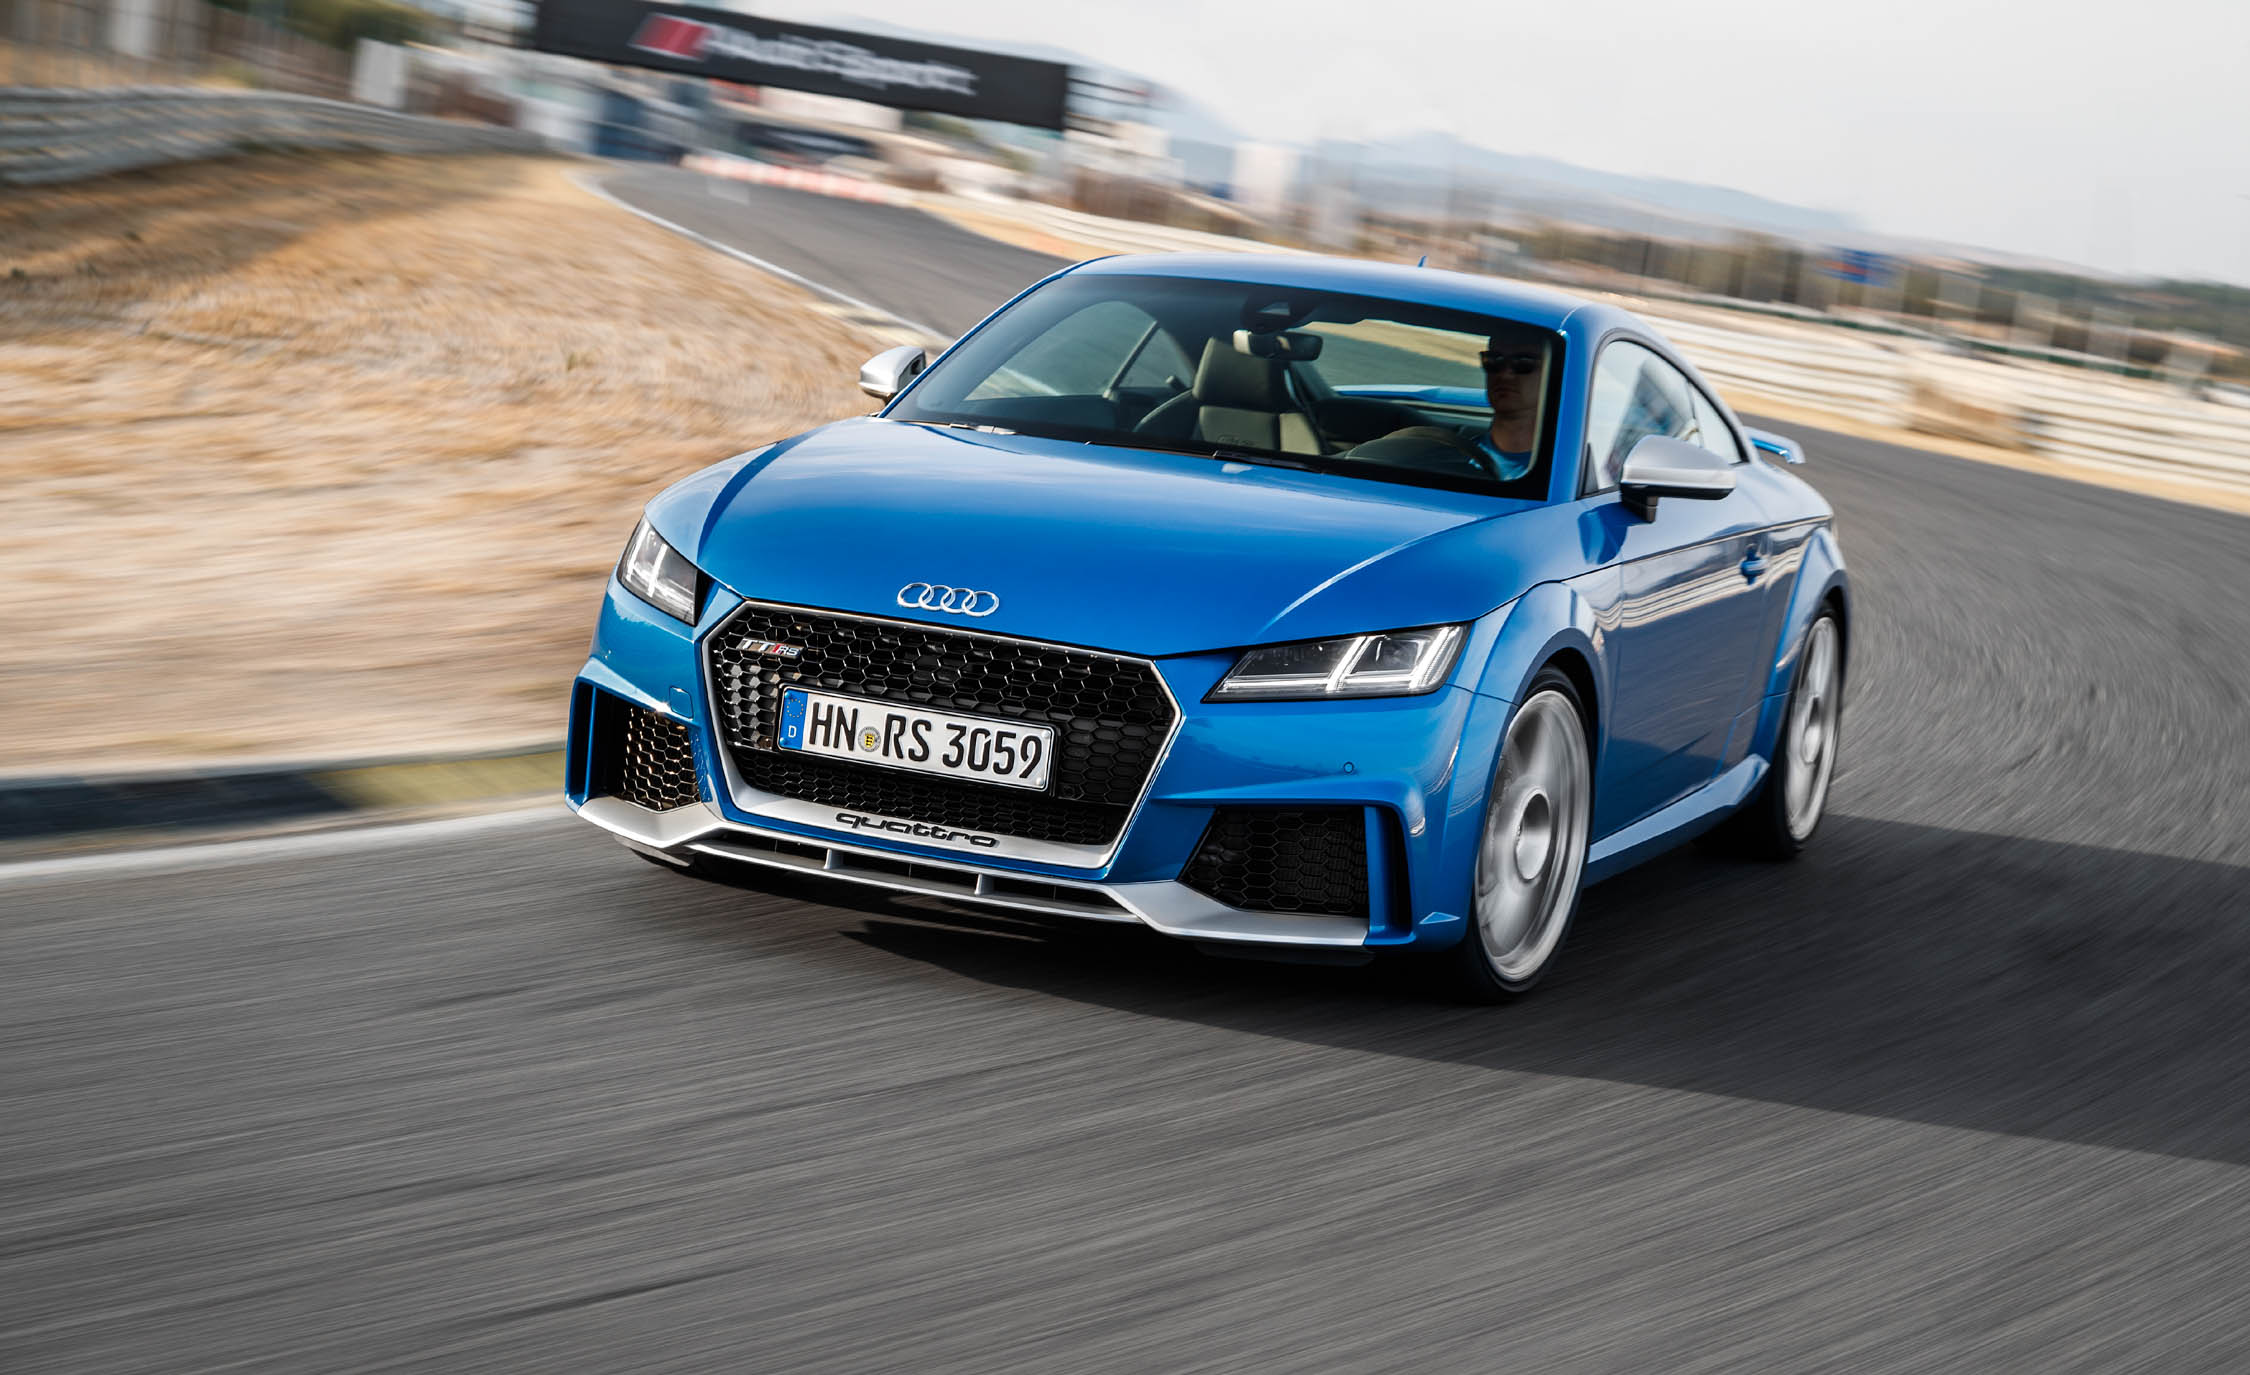 2017 Audi TT RS Coupe (View 32 of 34)